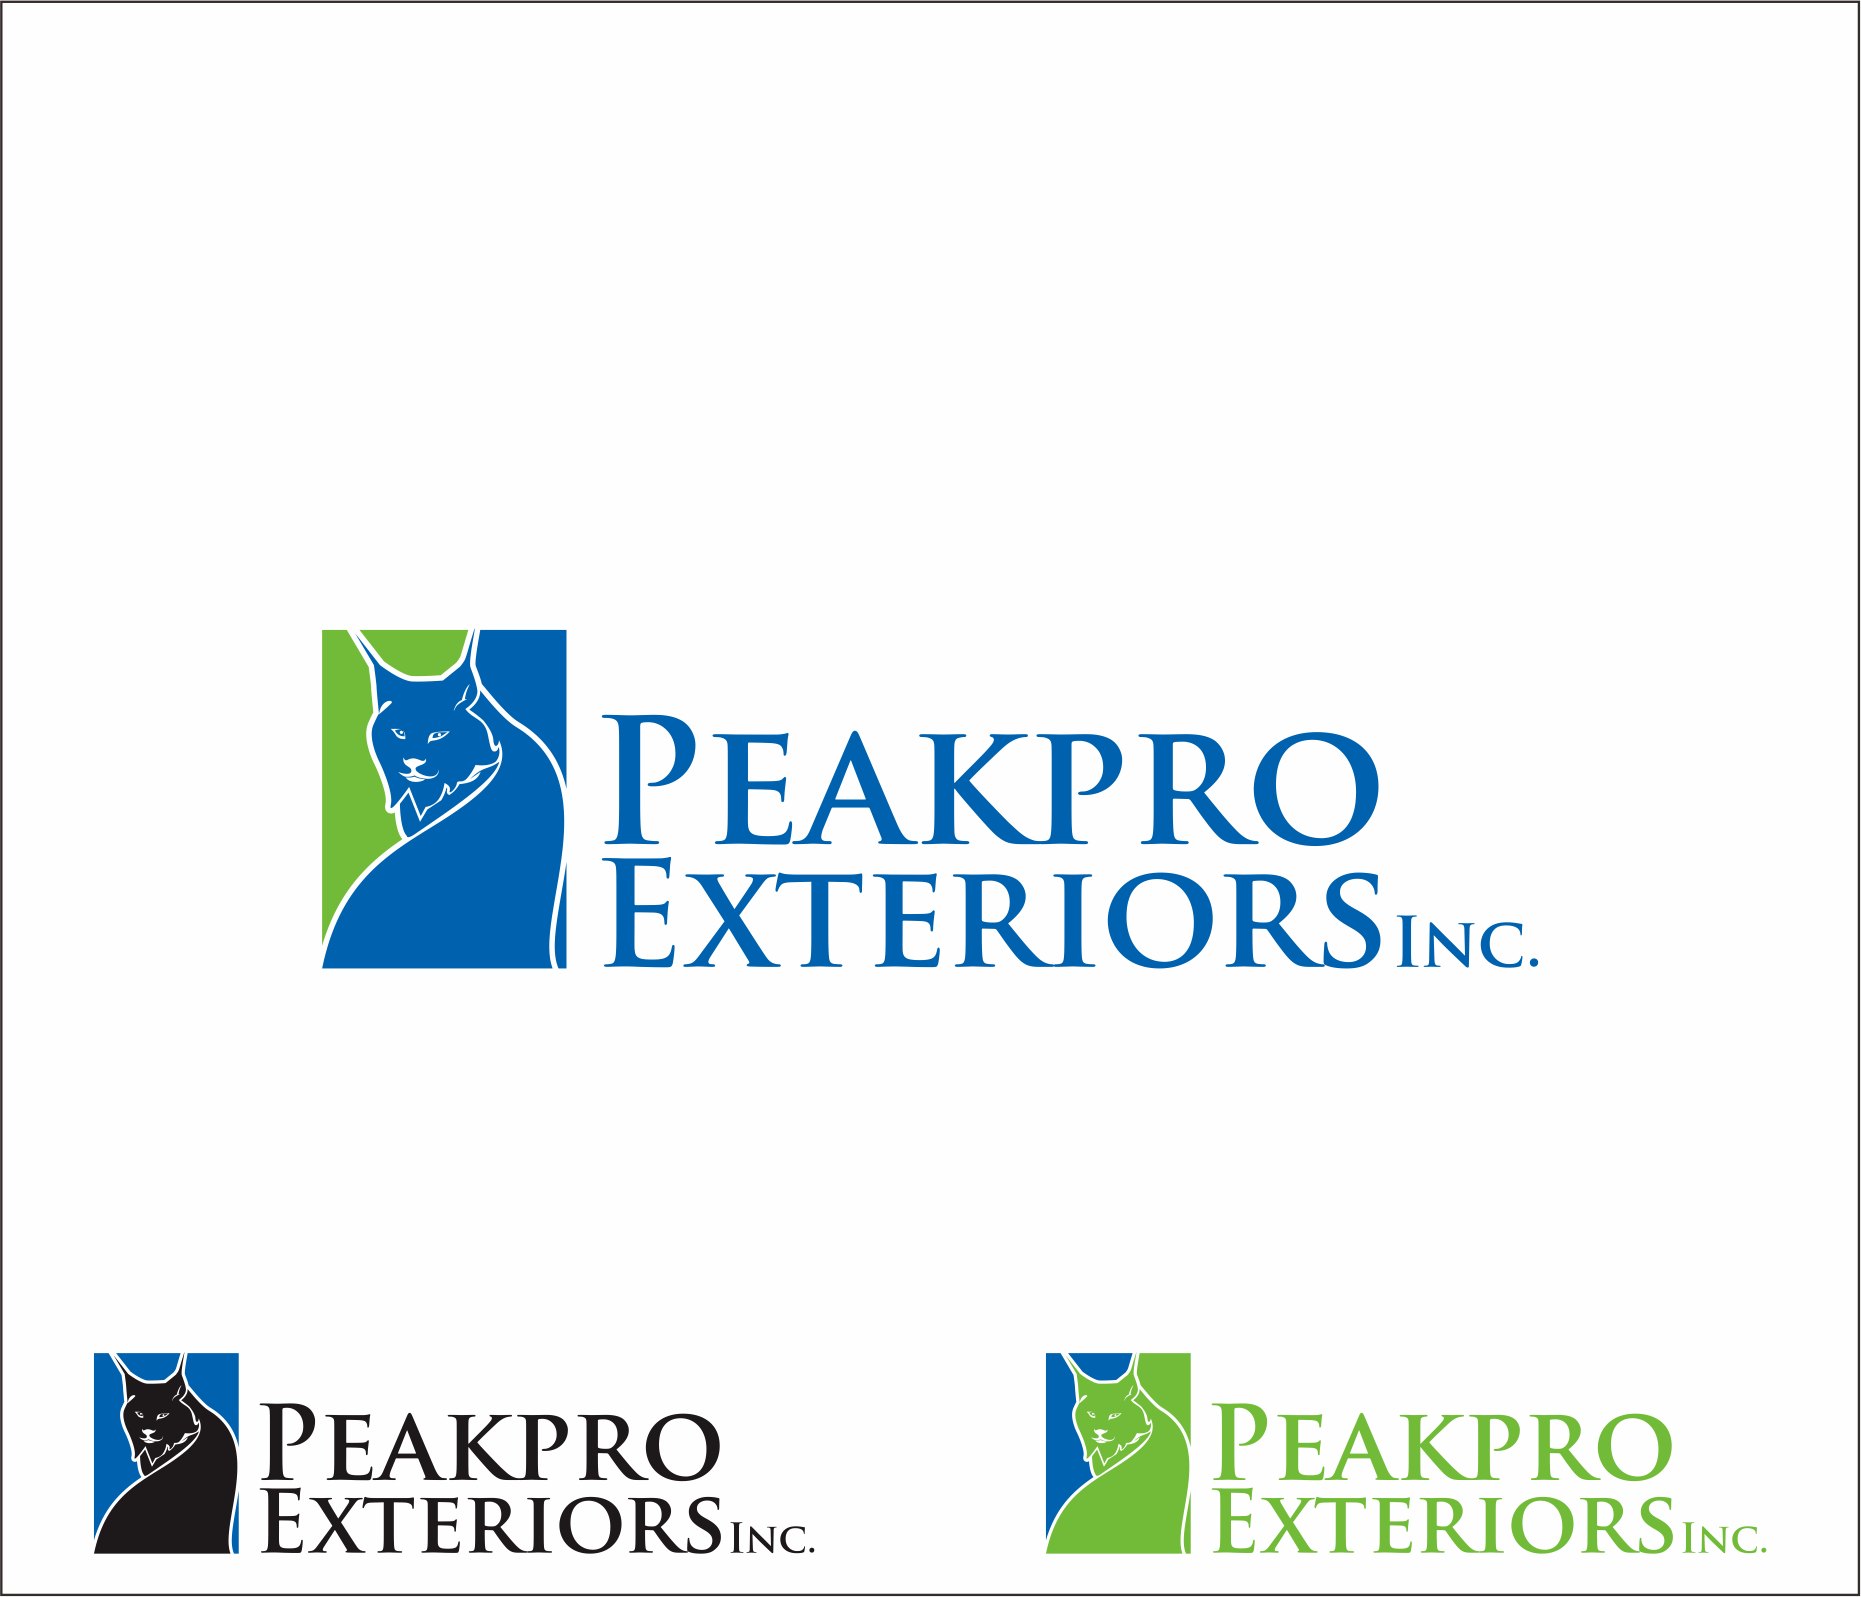 Logo Design by Armada Jamaluddin - Entry No. 186 in the Logo Design Contest Captivating Logo Design for Peakpro Exteriors Inc..